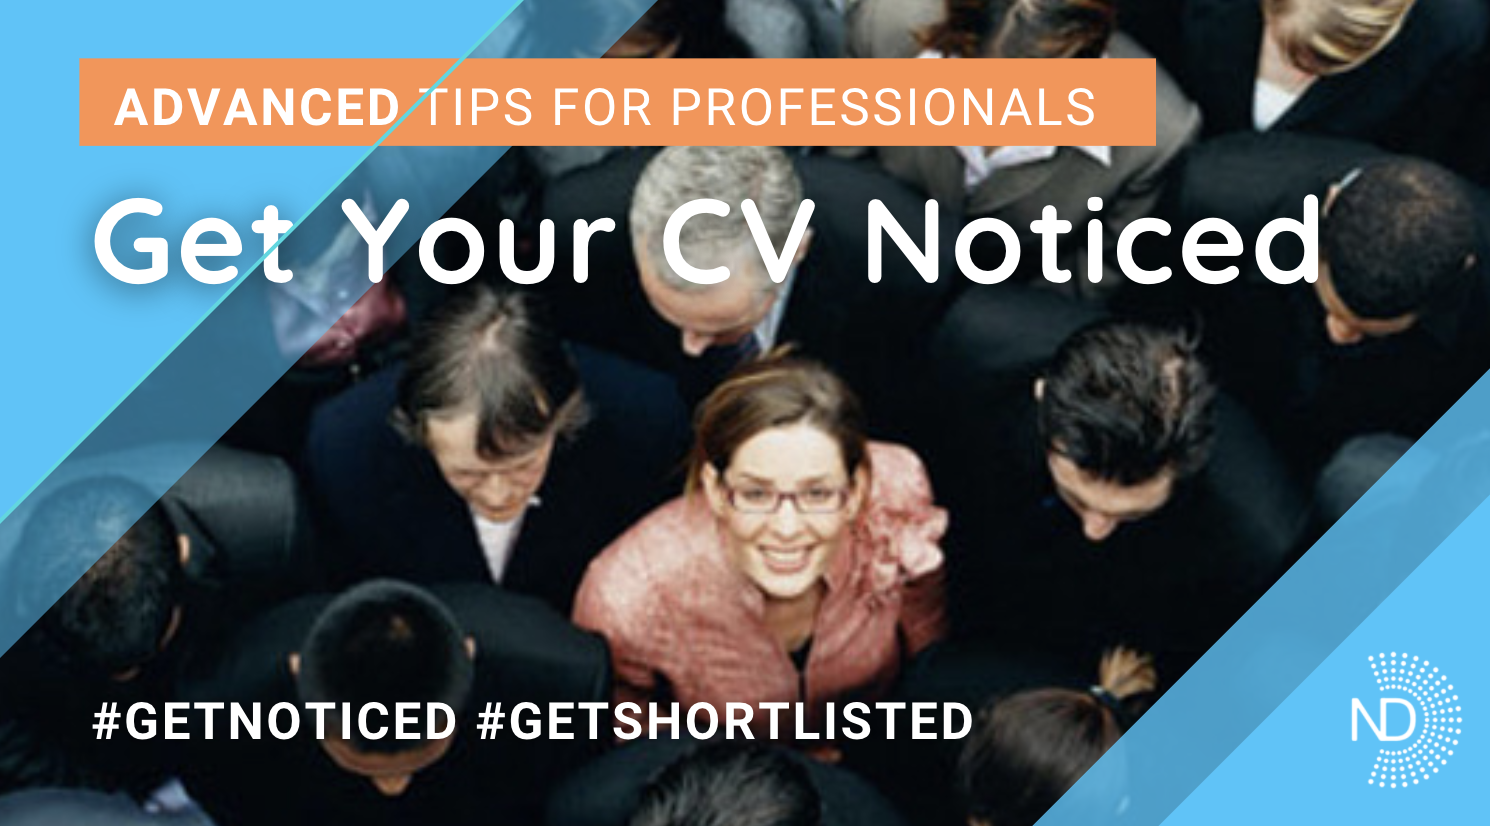 How to Get Your CV Noticed - Advanced Tips | Read more blogs at New Day Jobs